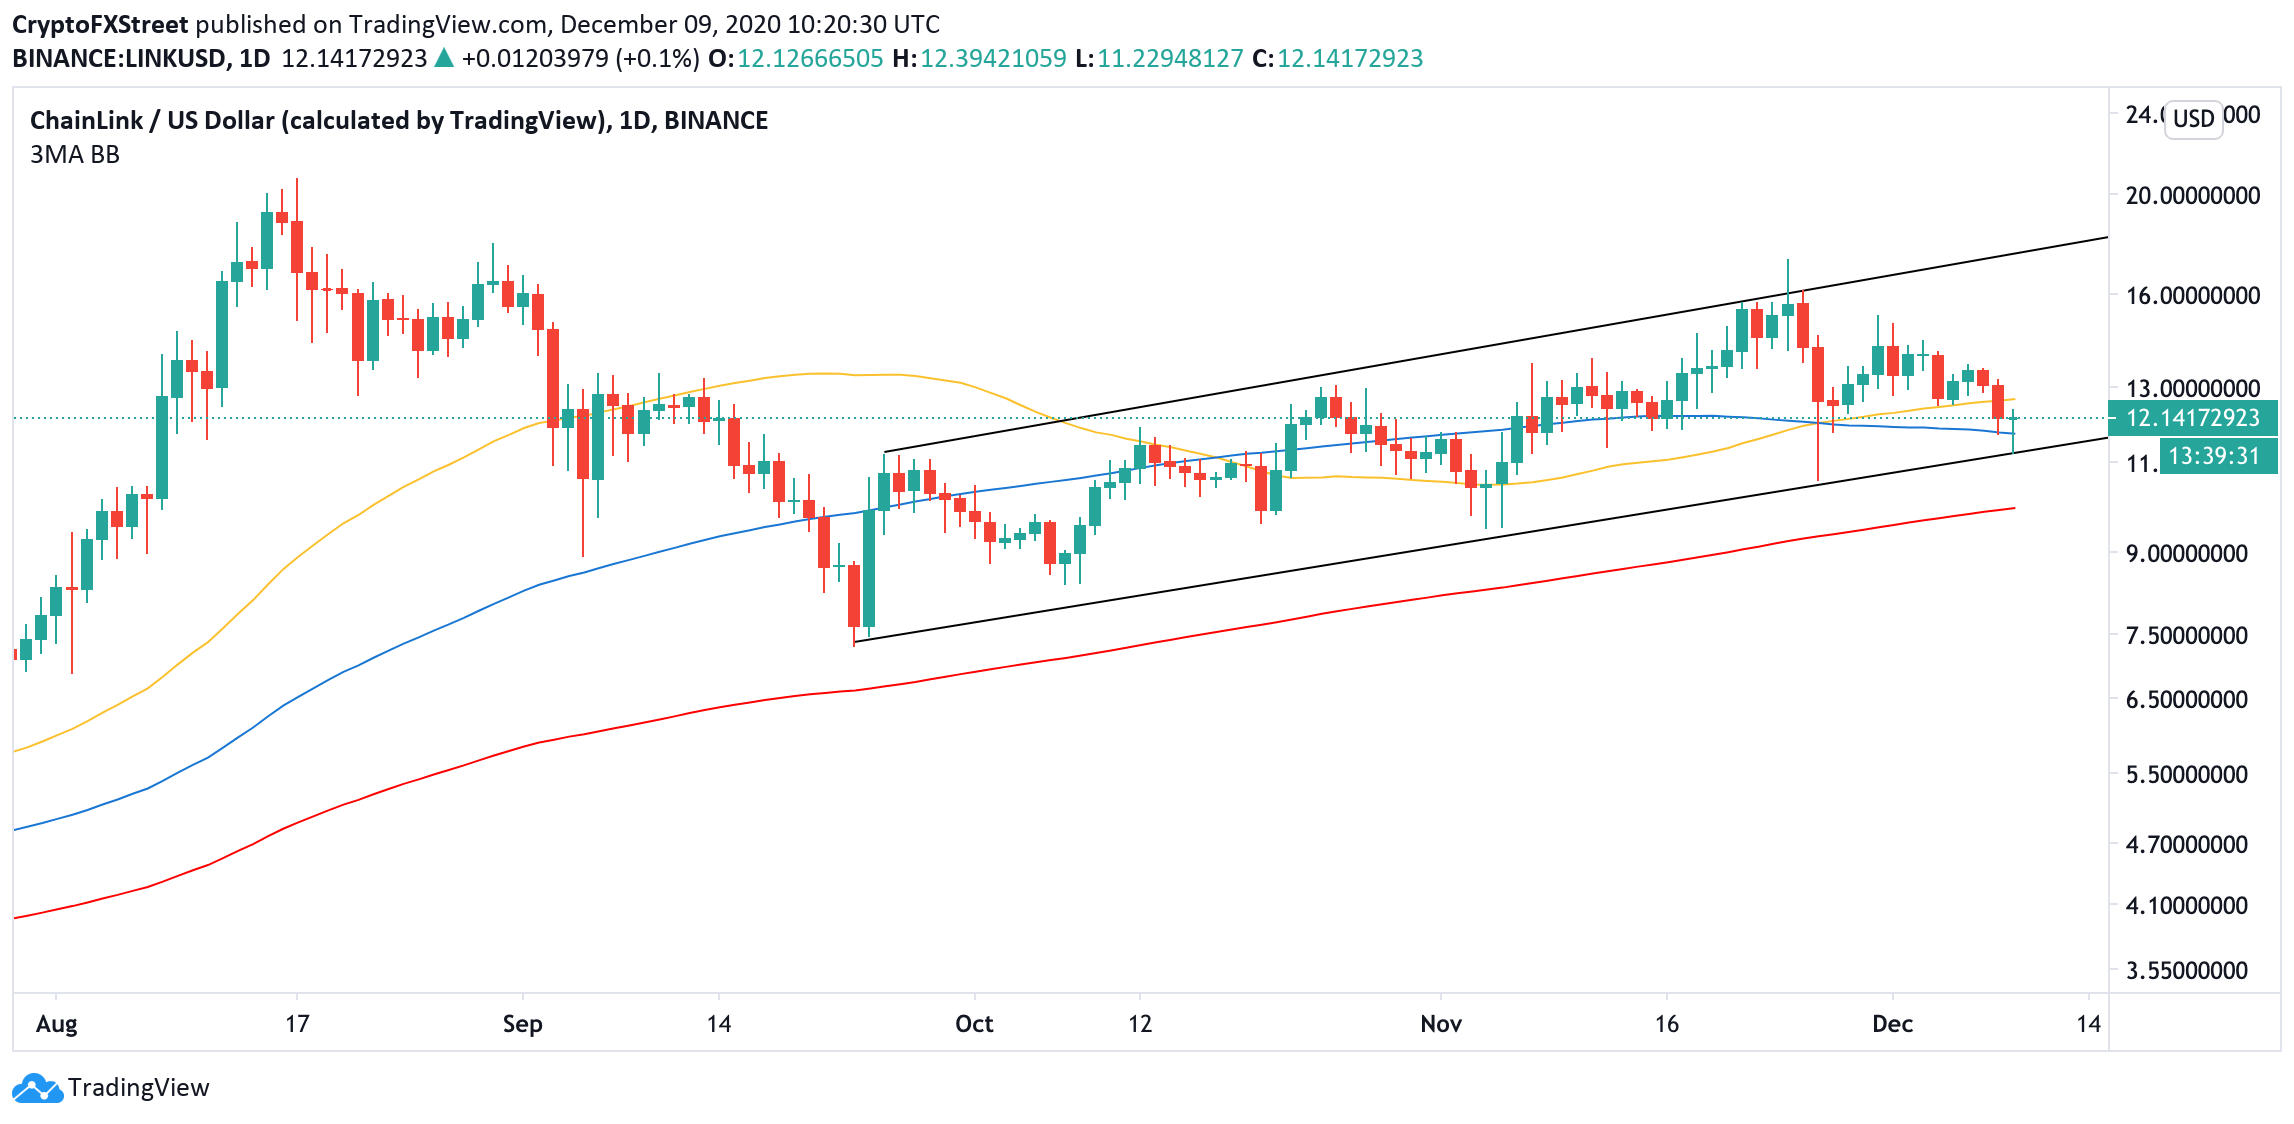 LINK's daily chart